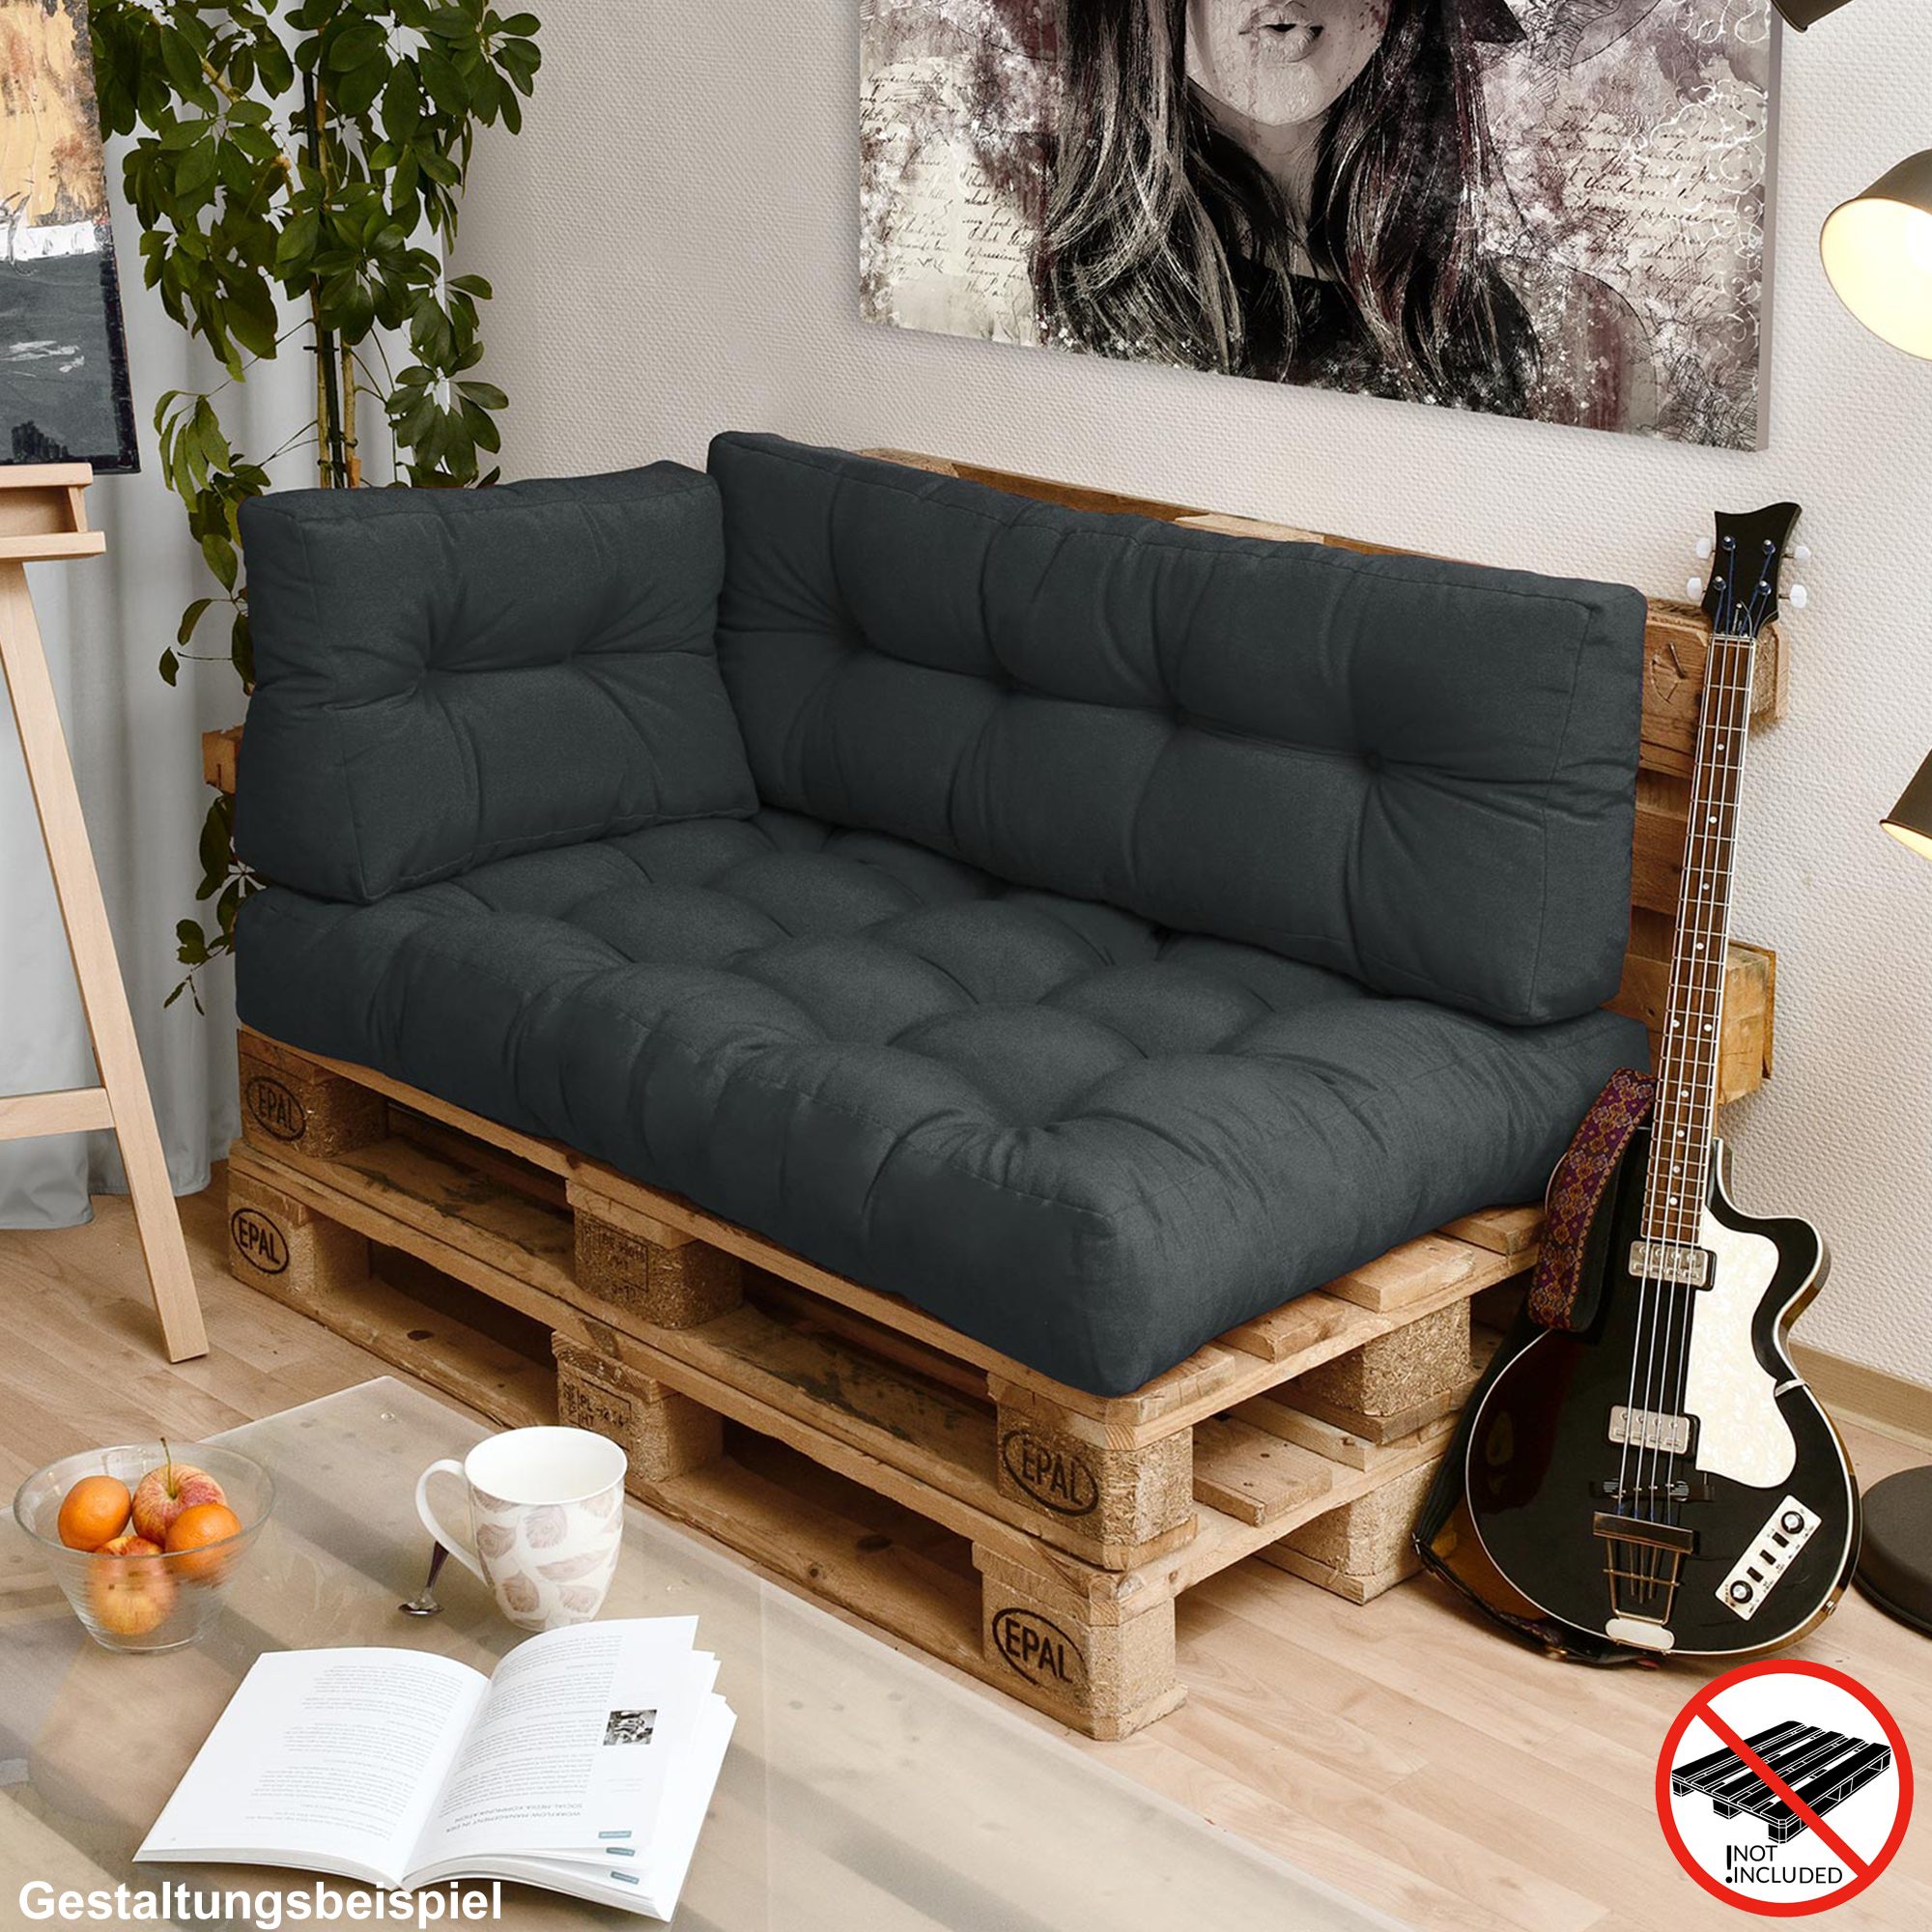 palettenkissen palettenpolster paletten palettenauflage polster kissen auflage ebay. Black Bedroom Furniture Sets. Home Design Ideas